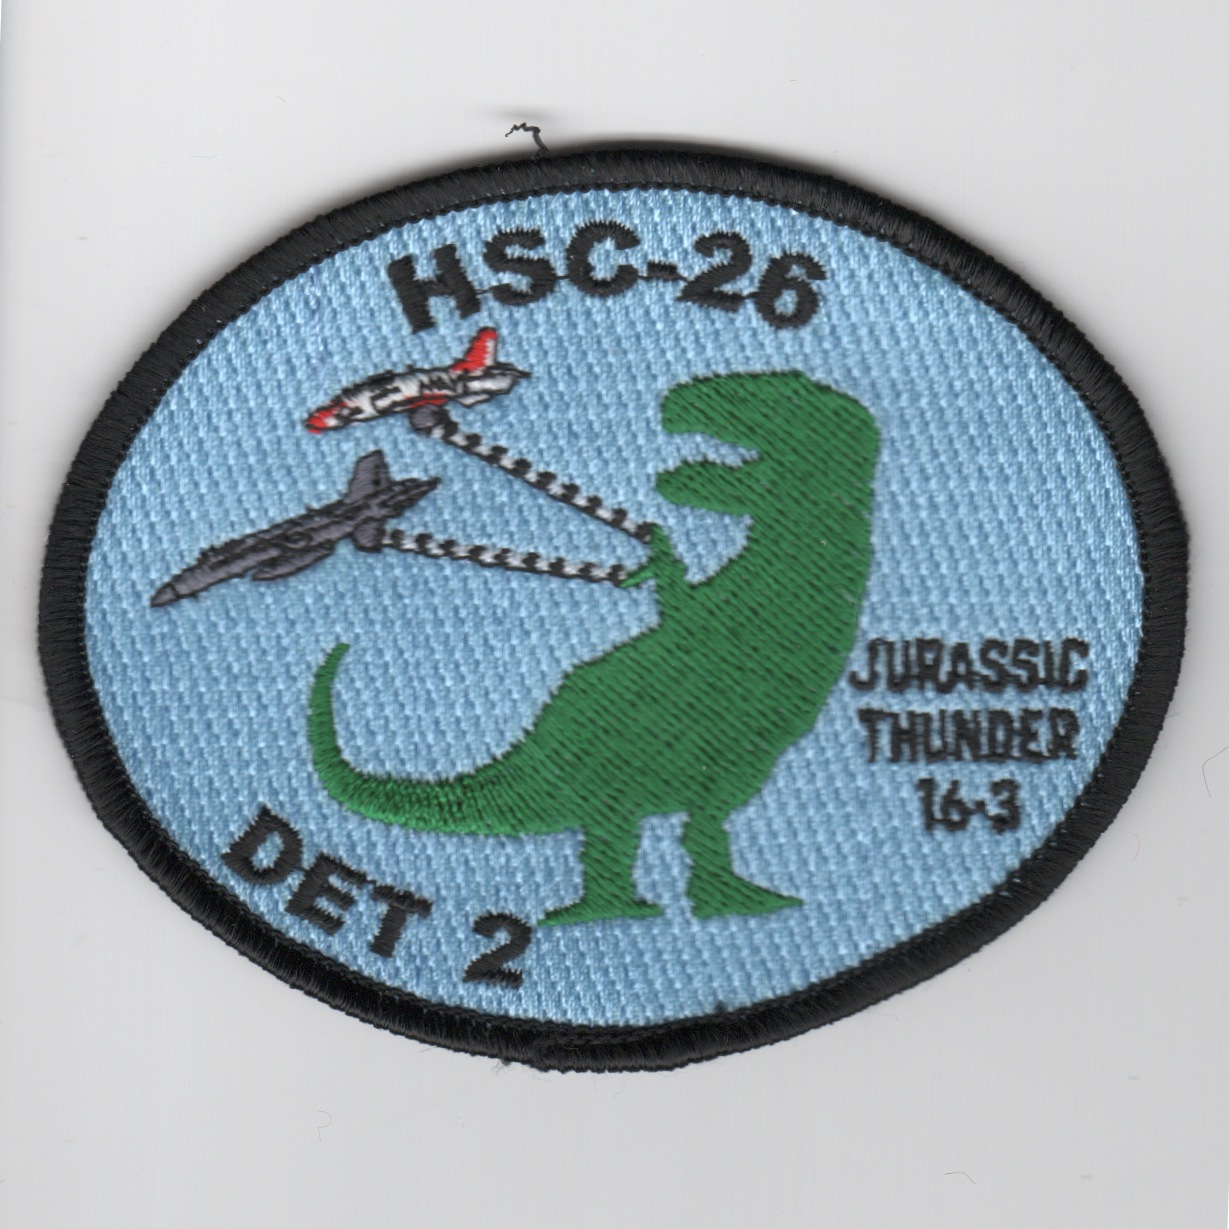 HSC-26 Det-2 'Jurassic 16-3' Patch